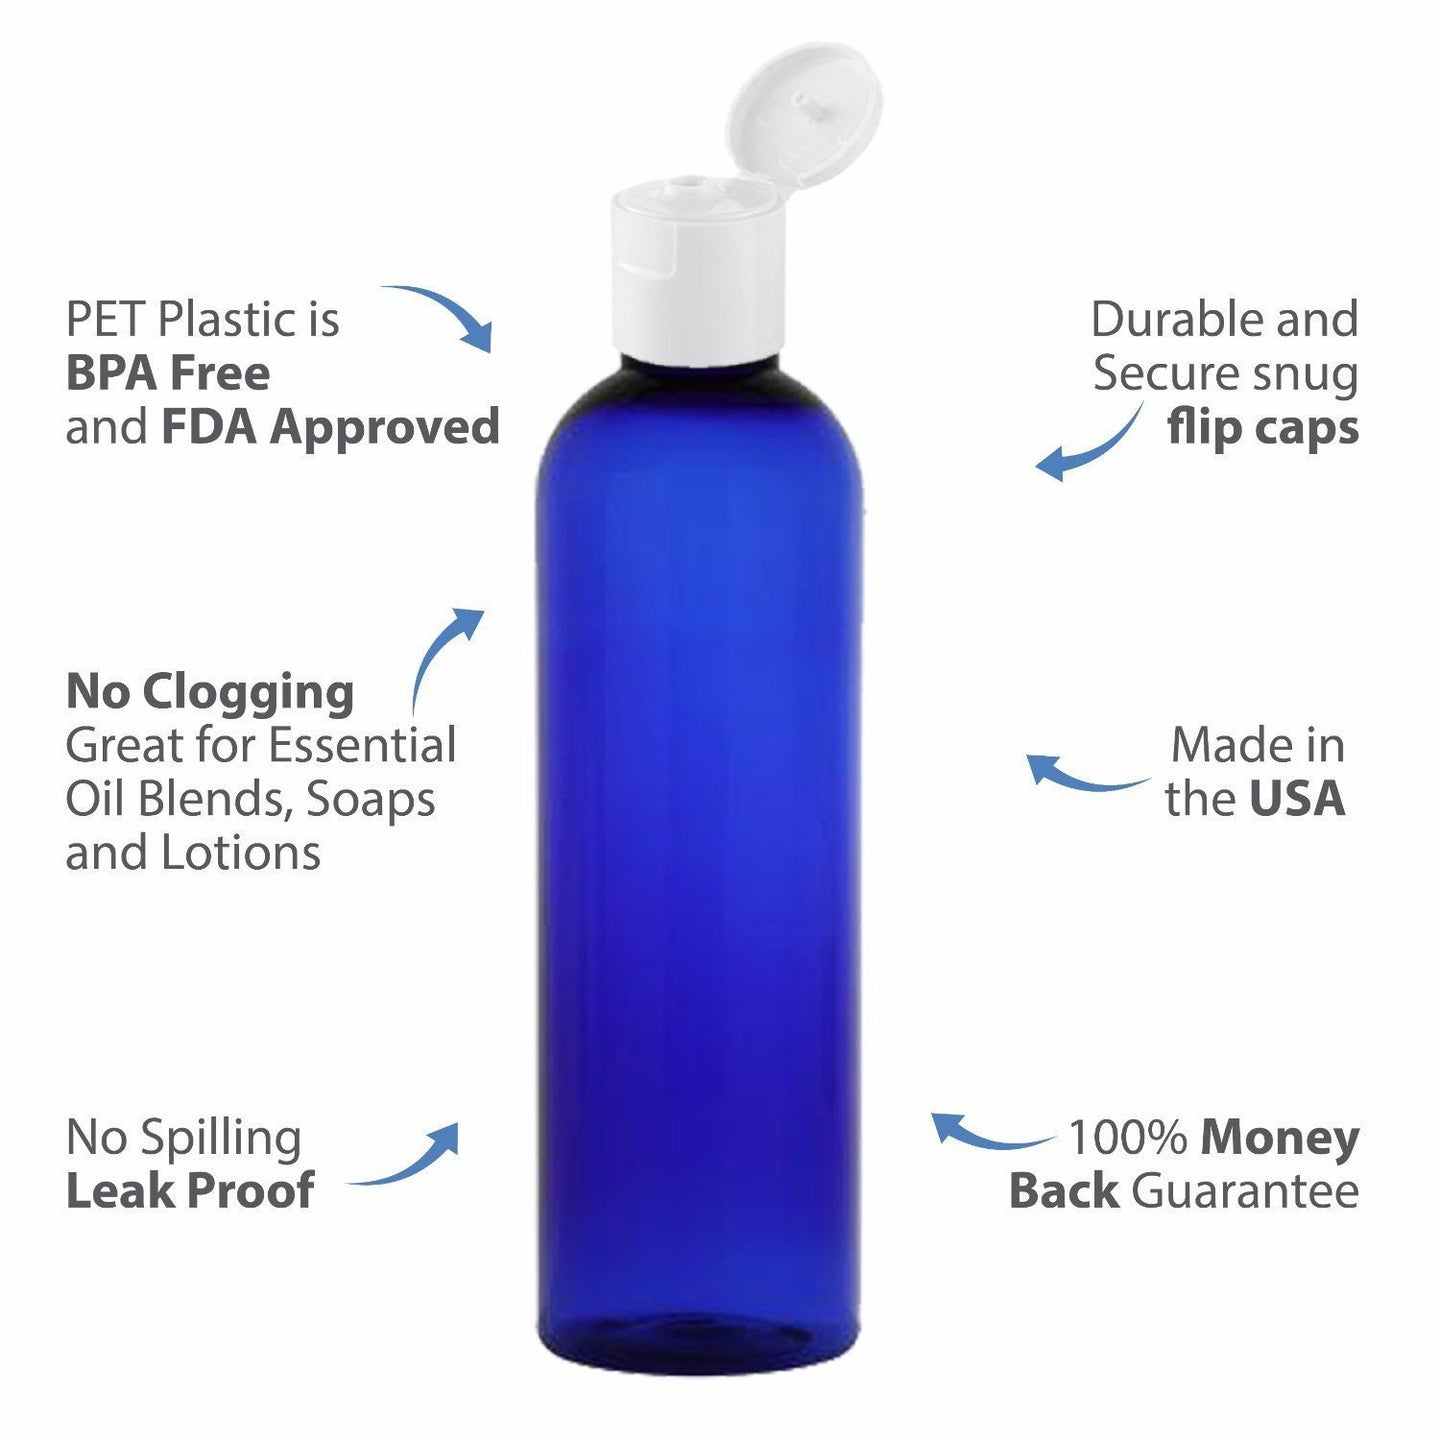 MoYo Natural Labs 8 oz Travel Bottle, Empty Travel Containers with Flip Caps, BPA Free PET Plastic Squeezable Toiletry/Cosmetic Bottle (pack of 50, Cobalt Blue)